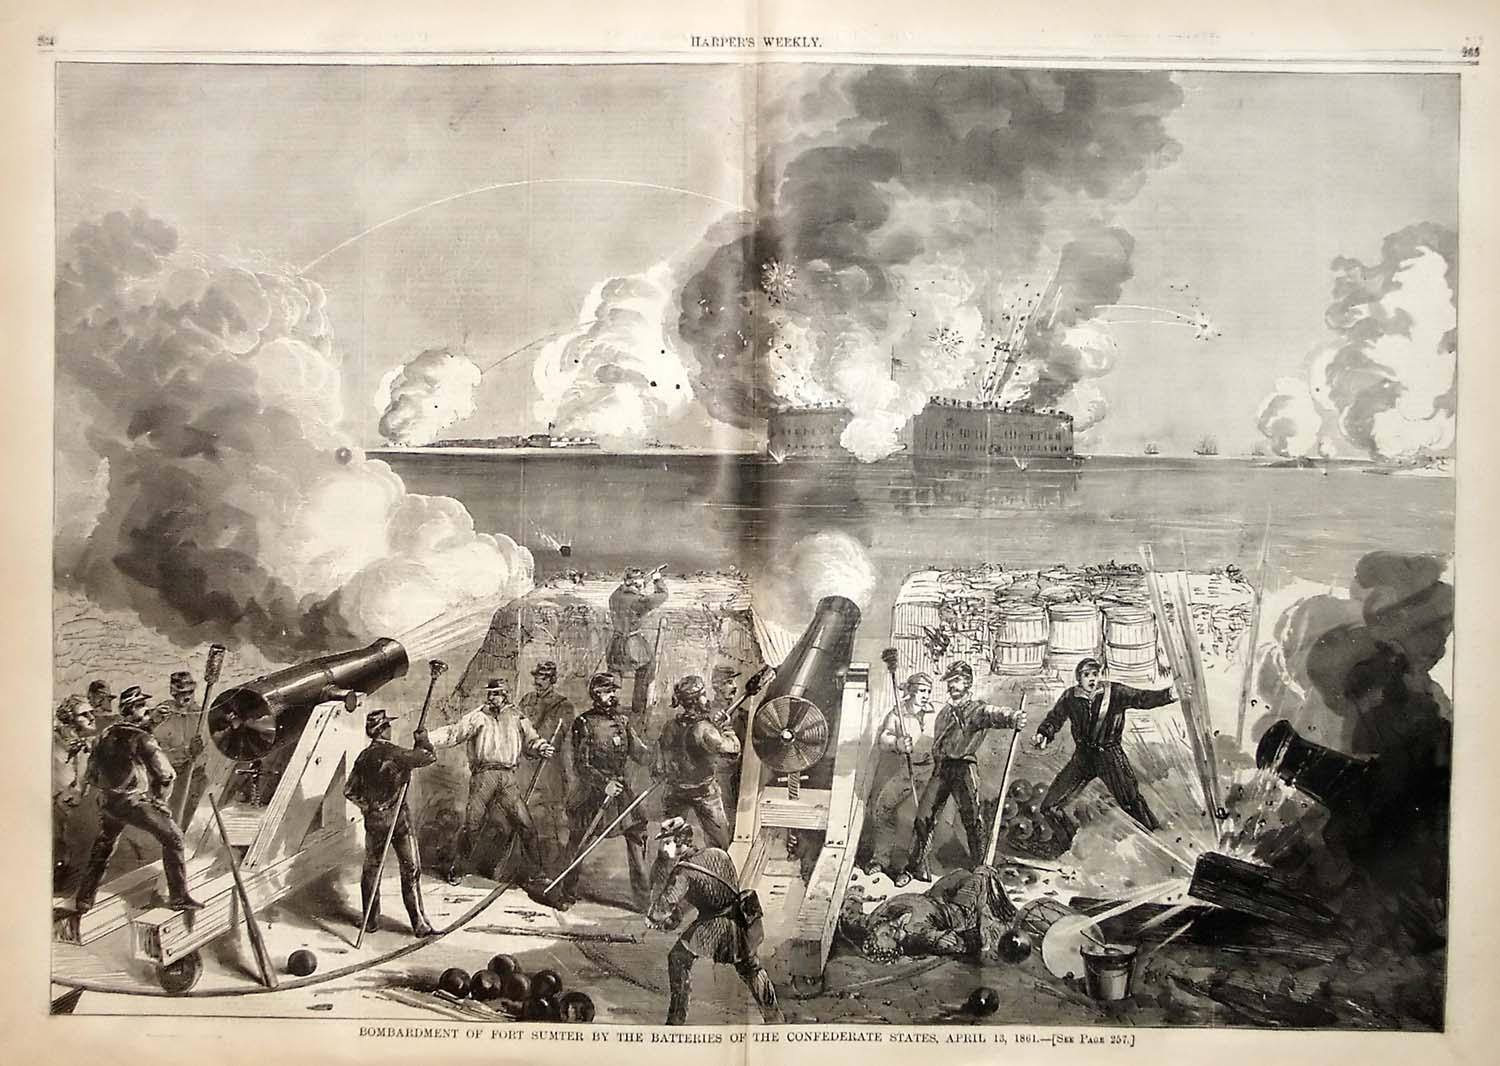 Fort Sumter Image One